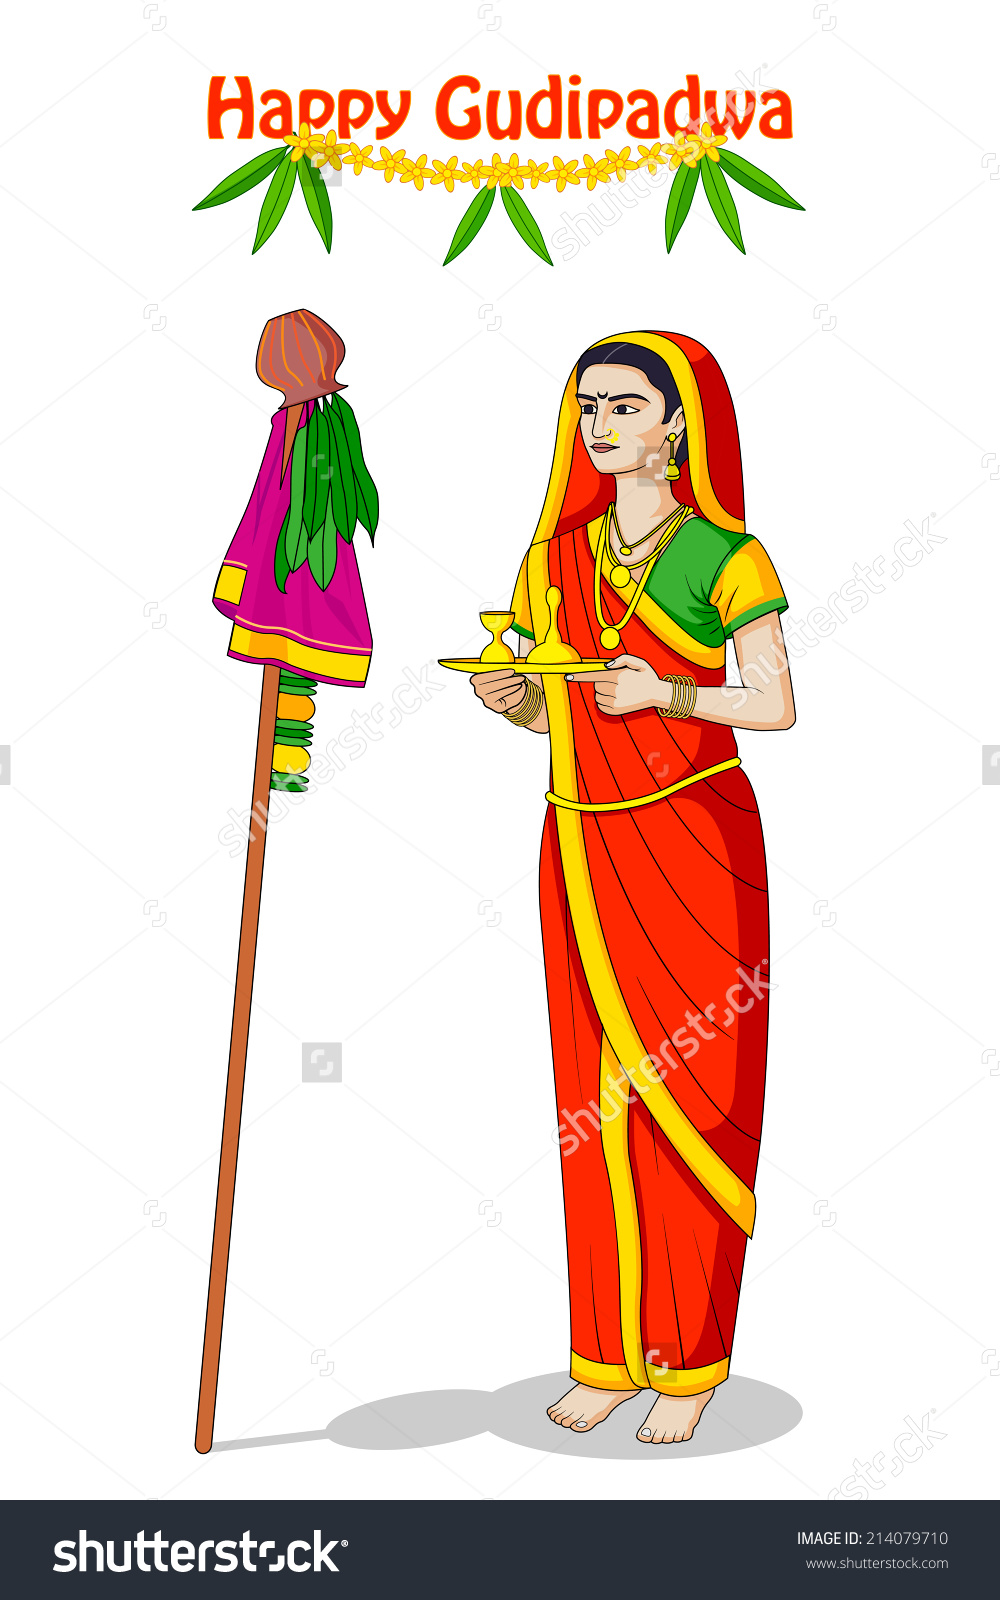 Woman Offering Prayer Happy Gudi Padwa Stock Vector 214079710.